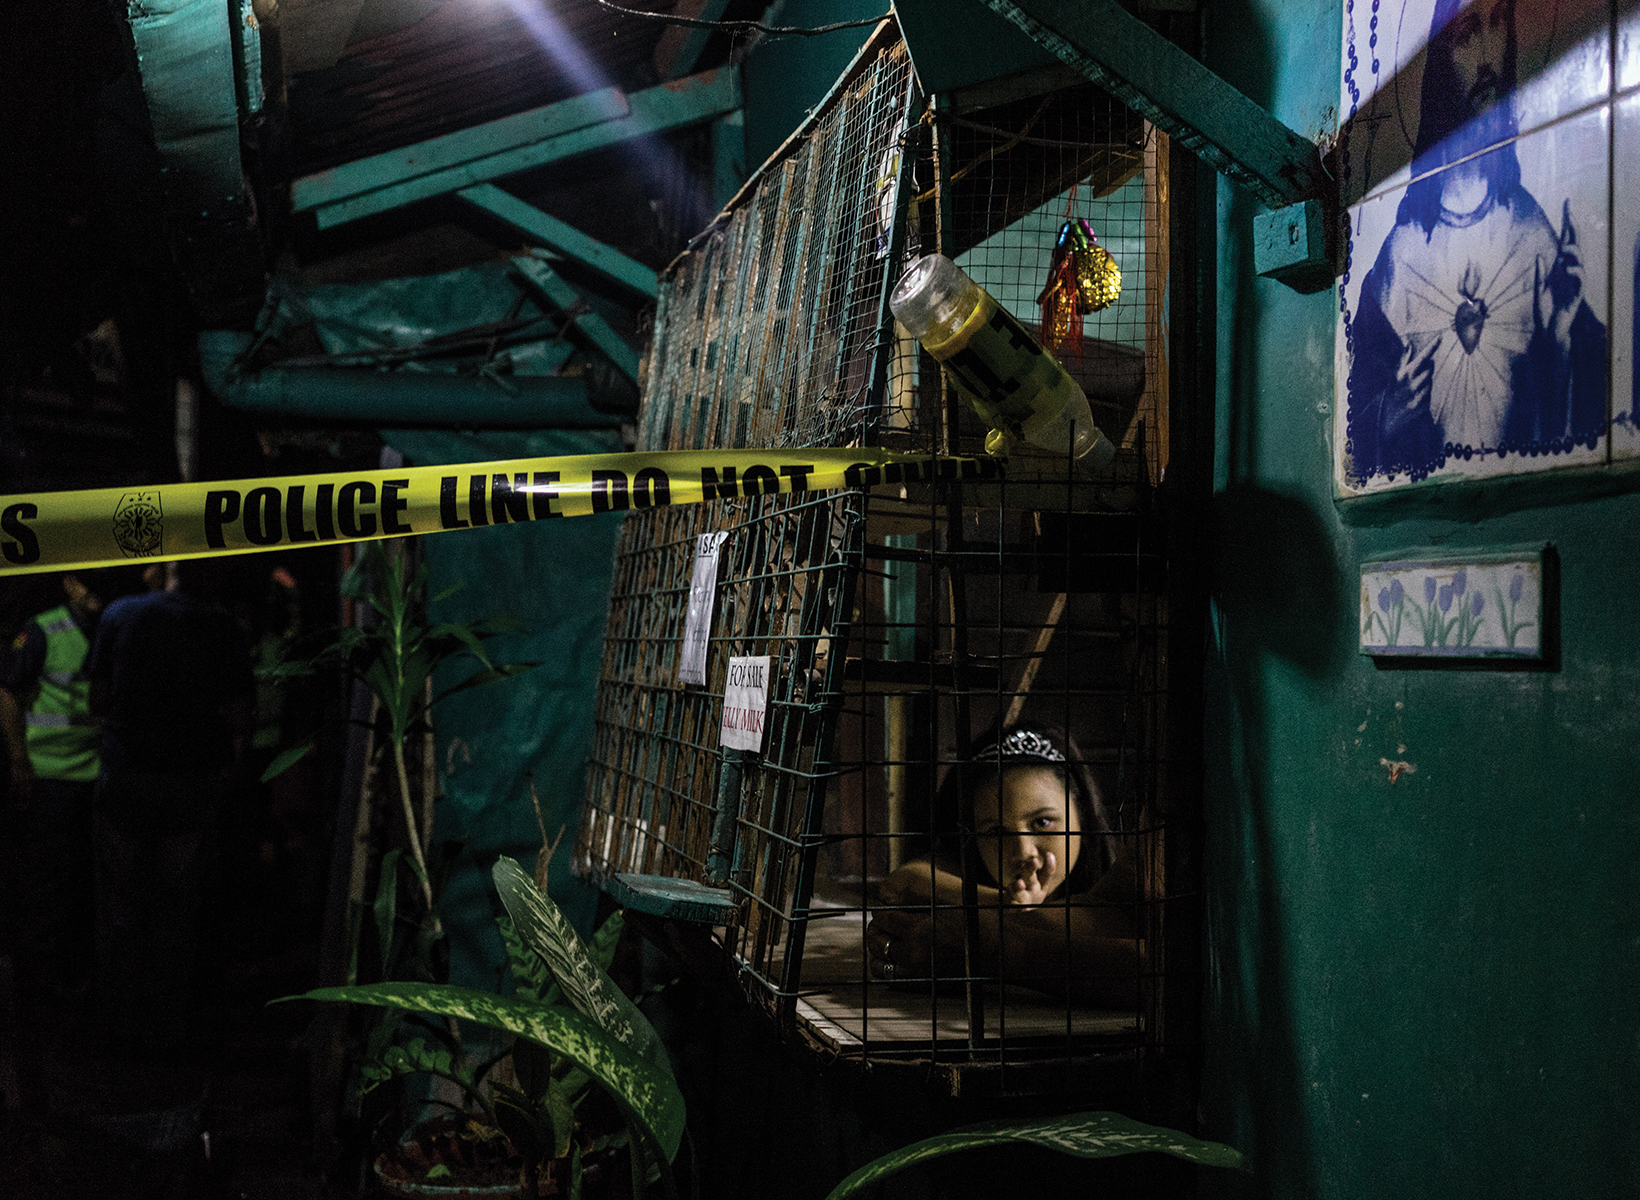 Filipino Photographer Hannah Reyes Morales Goes Home Again | Productivity, ONLY infoTech